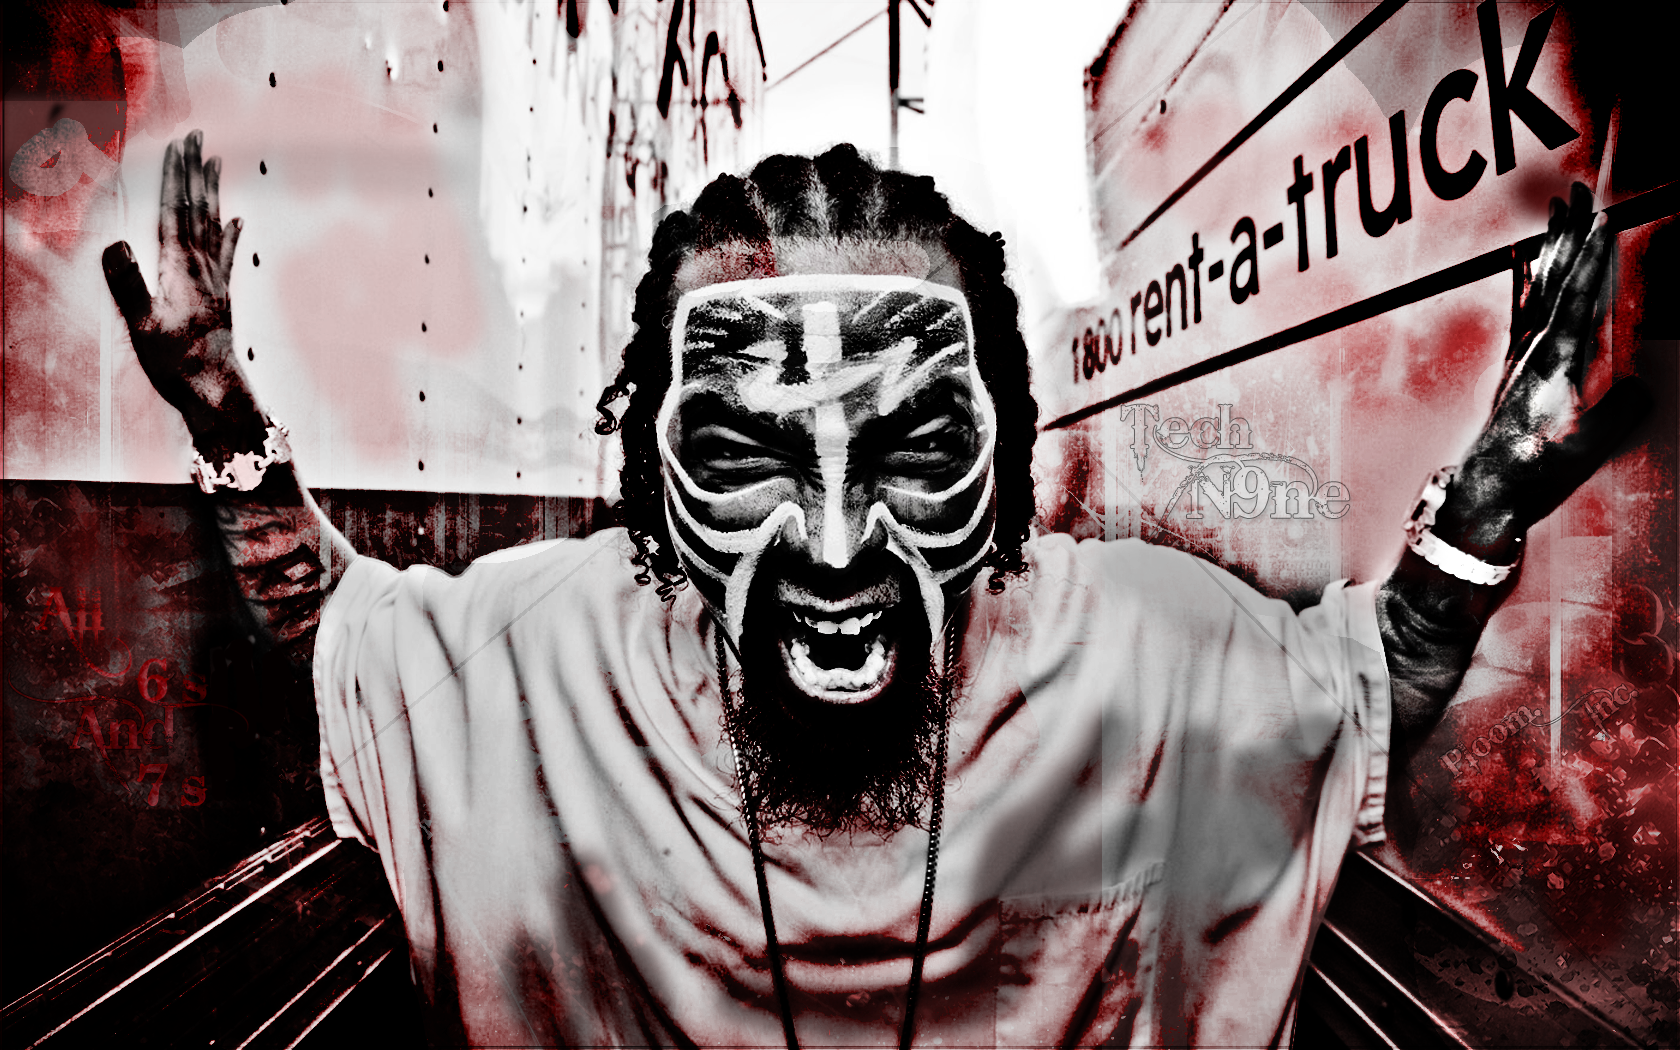 TECH N9NE gangsta rapper rap hip hop dark g wallpaper 1680x1050 1680x1050